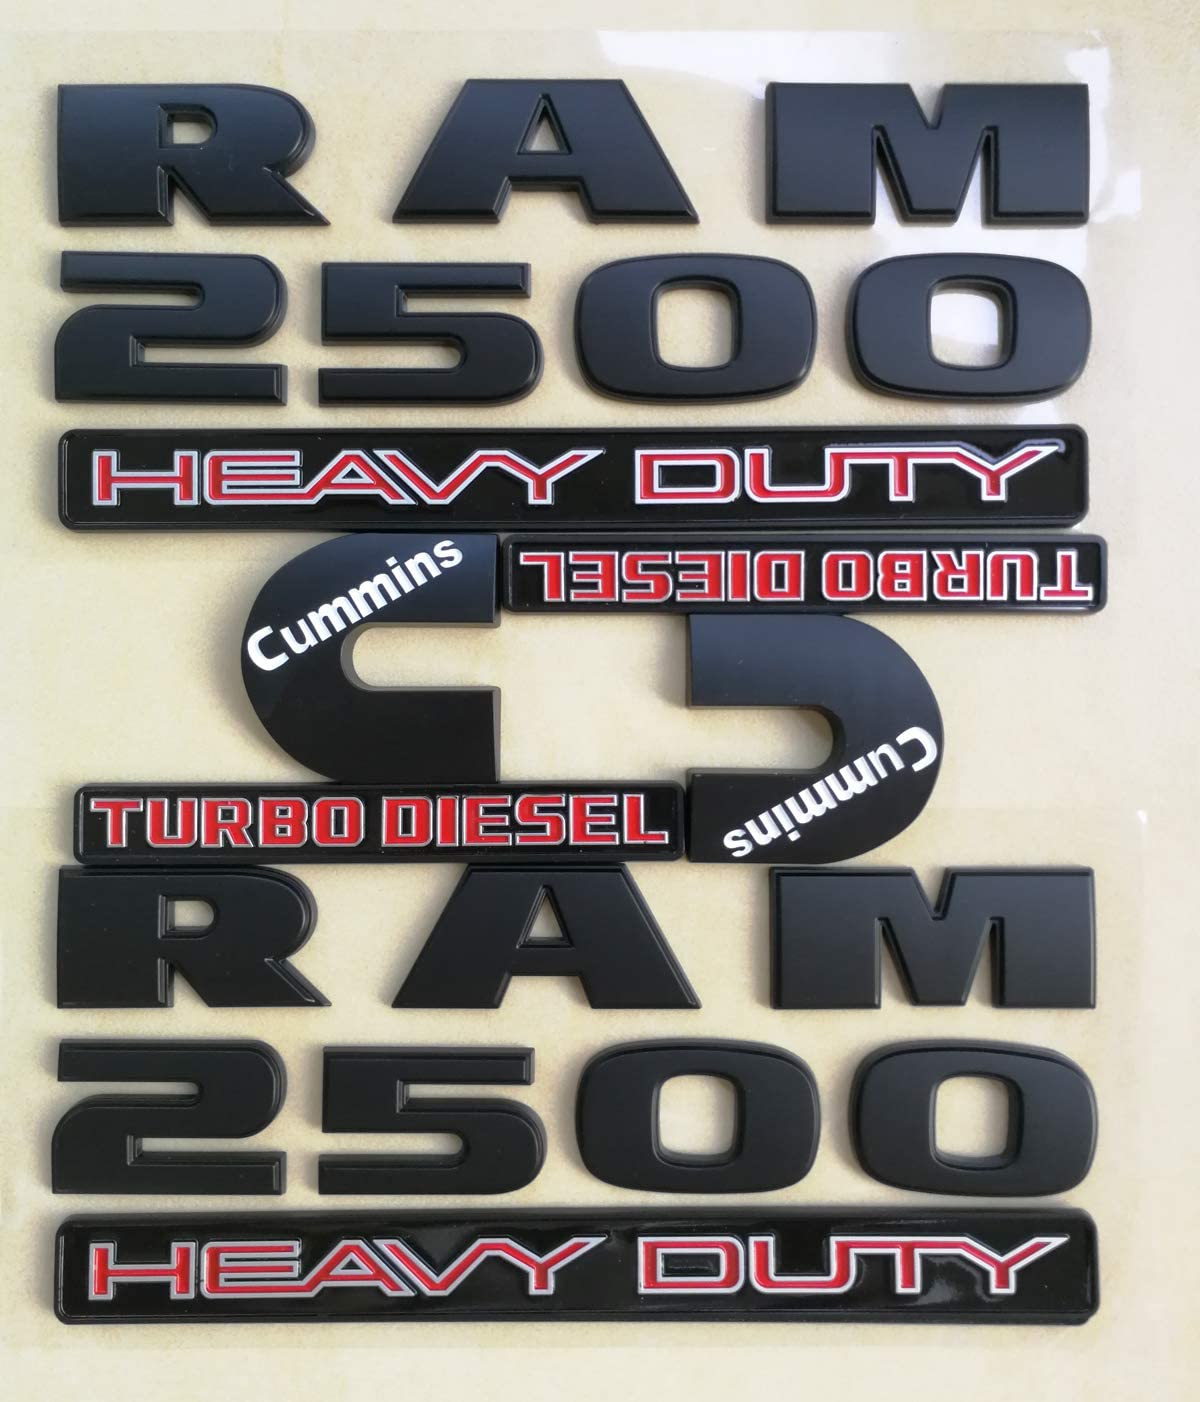 2Pieces 2500 Heavy Duty /& 2Pieces Cummins Turbo Diesel Emblem Nameplate Black 3D ABS Stickers Decals Badge for Ram 2500